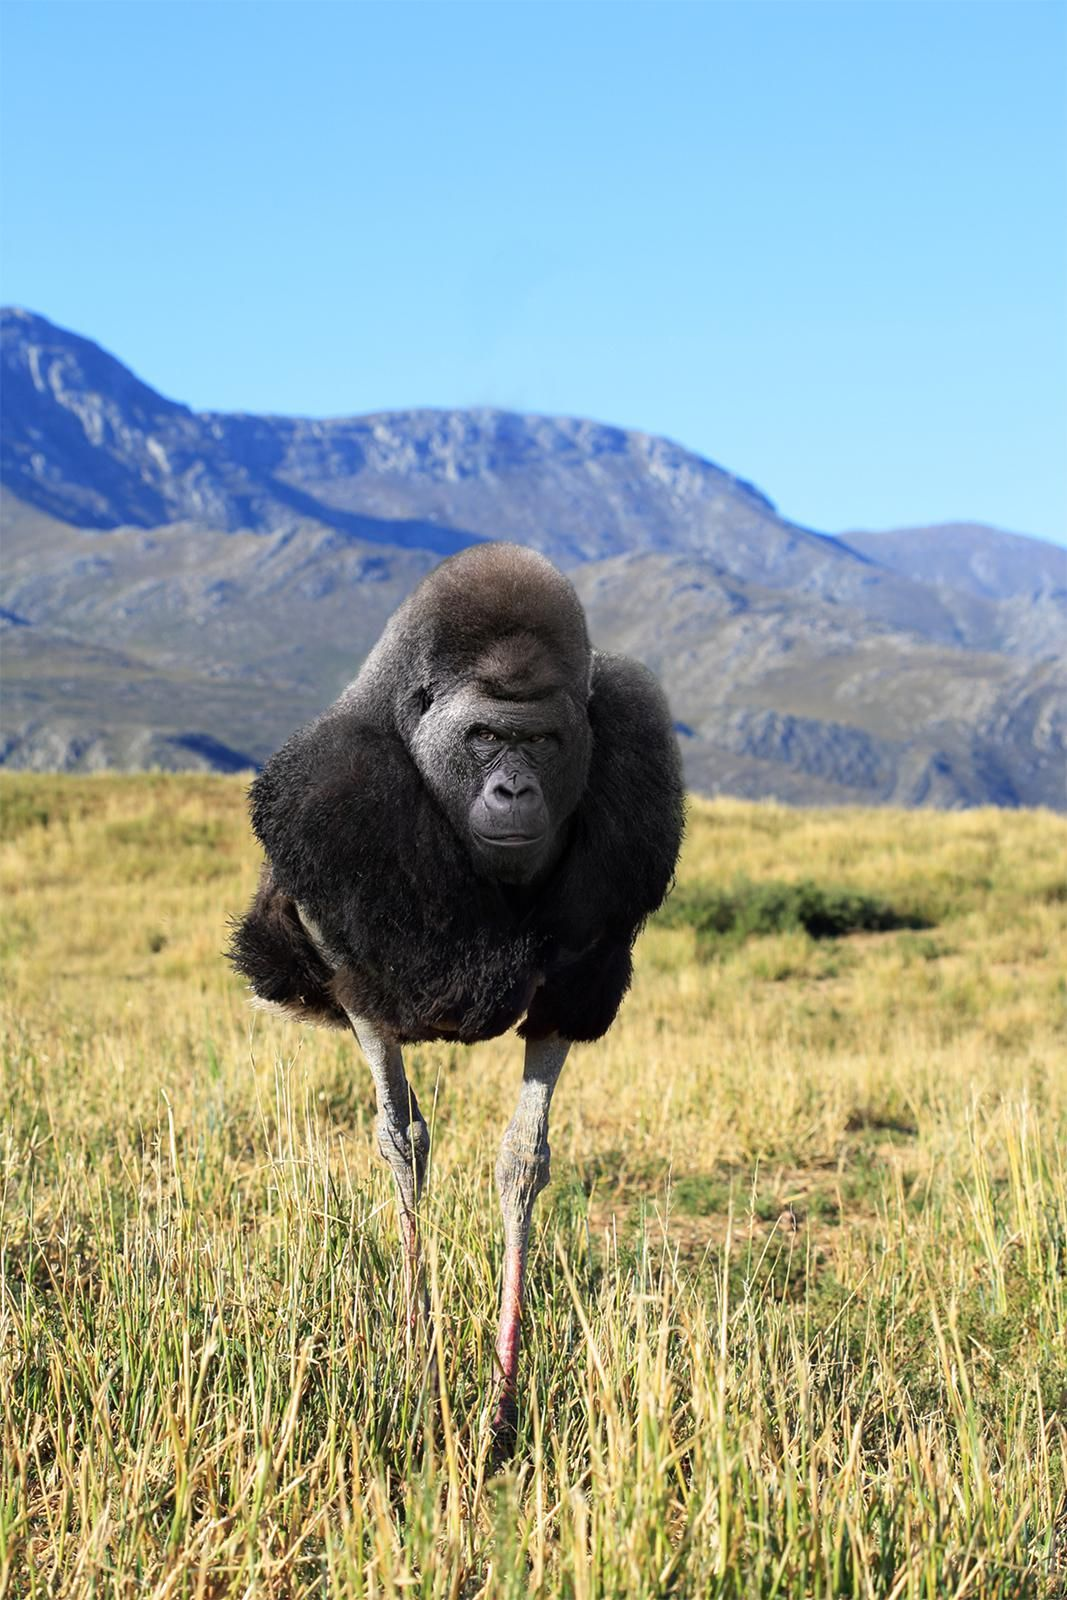 I mixed a gorilla with an ostrich for your amusement